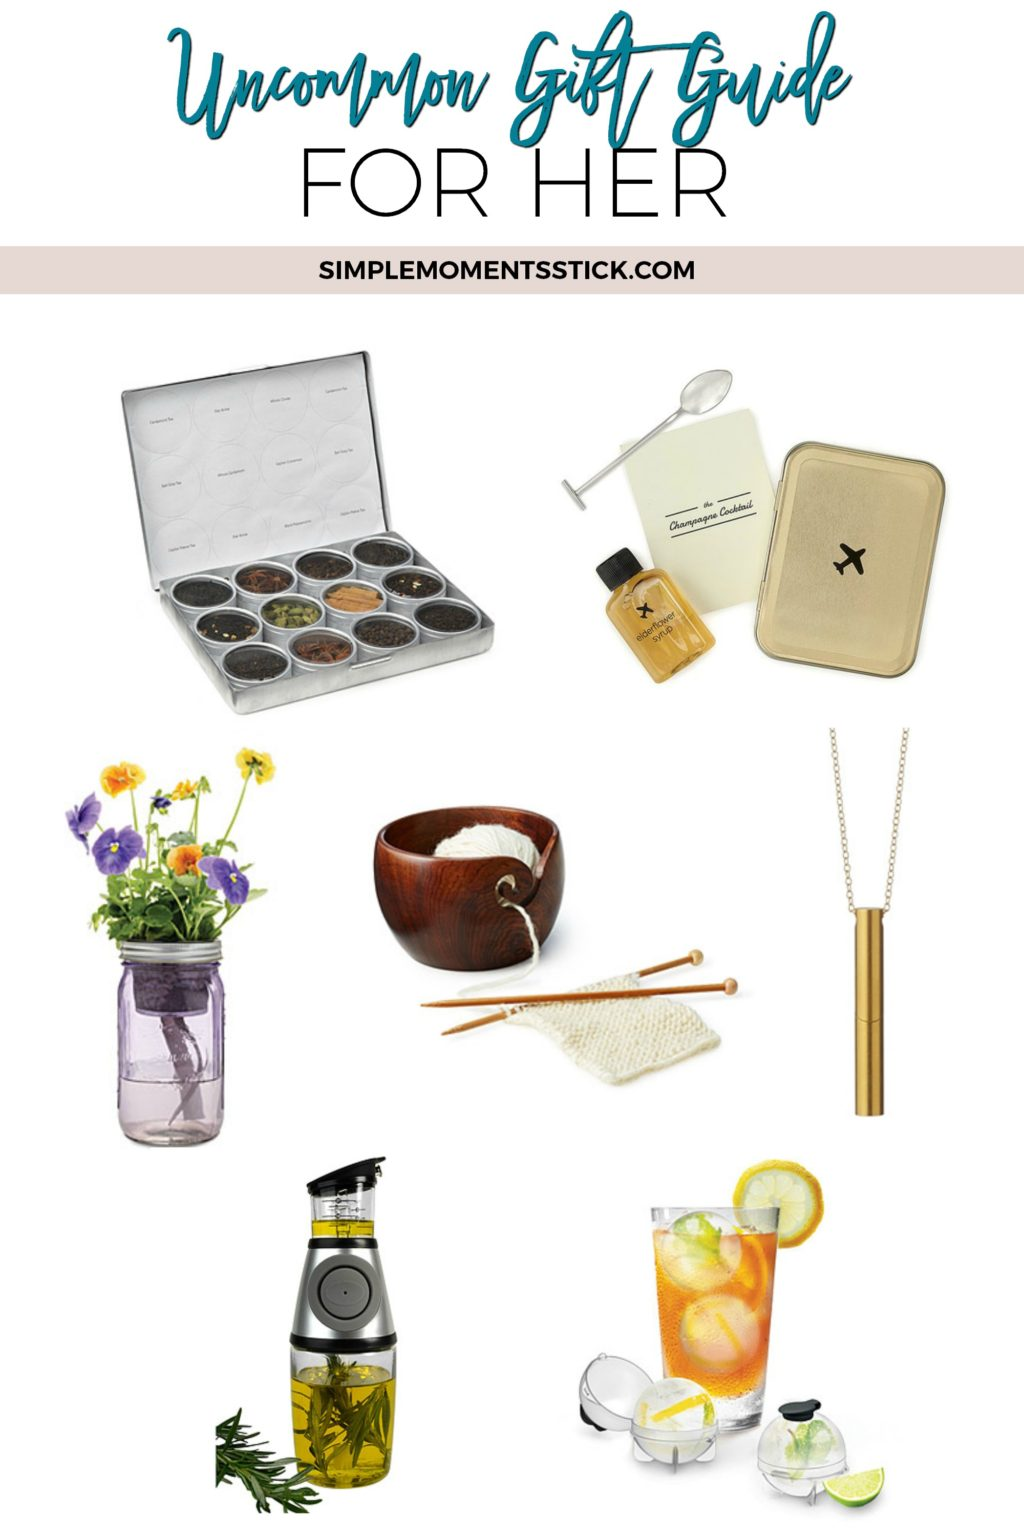 Check out this fantastic gift guide for your favorite woman!